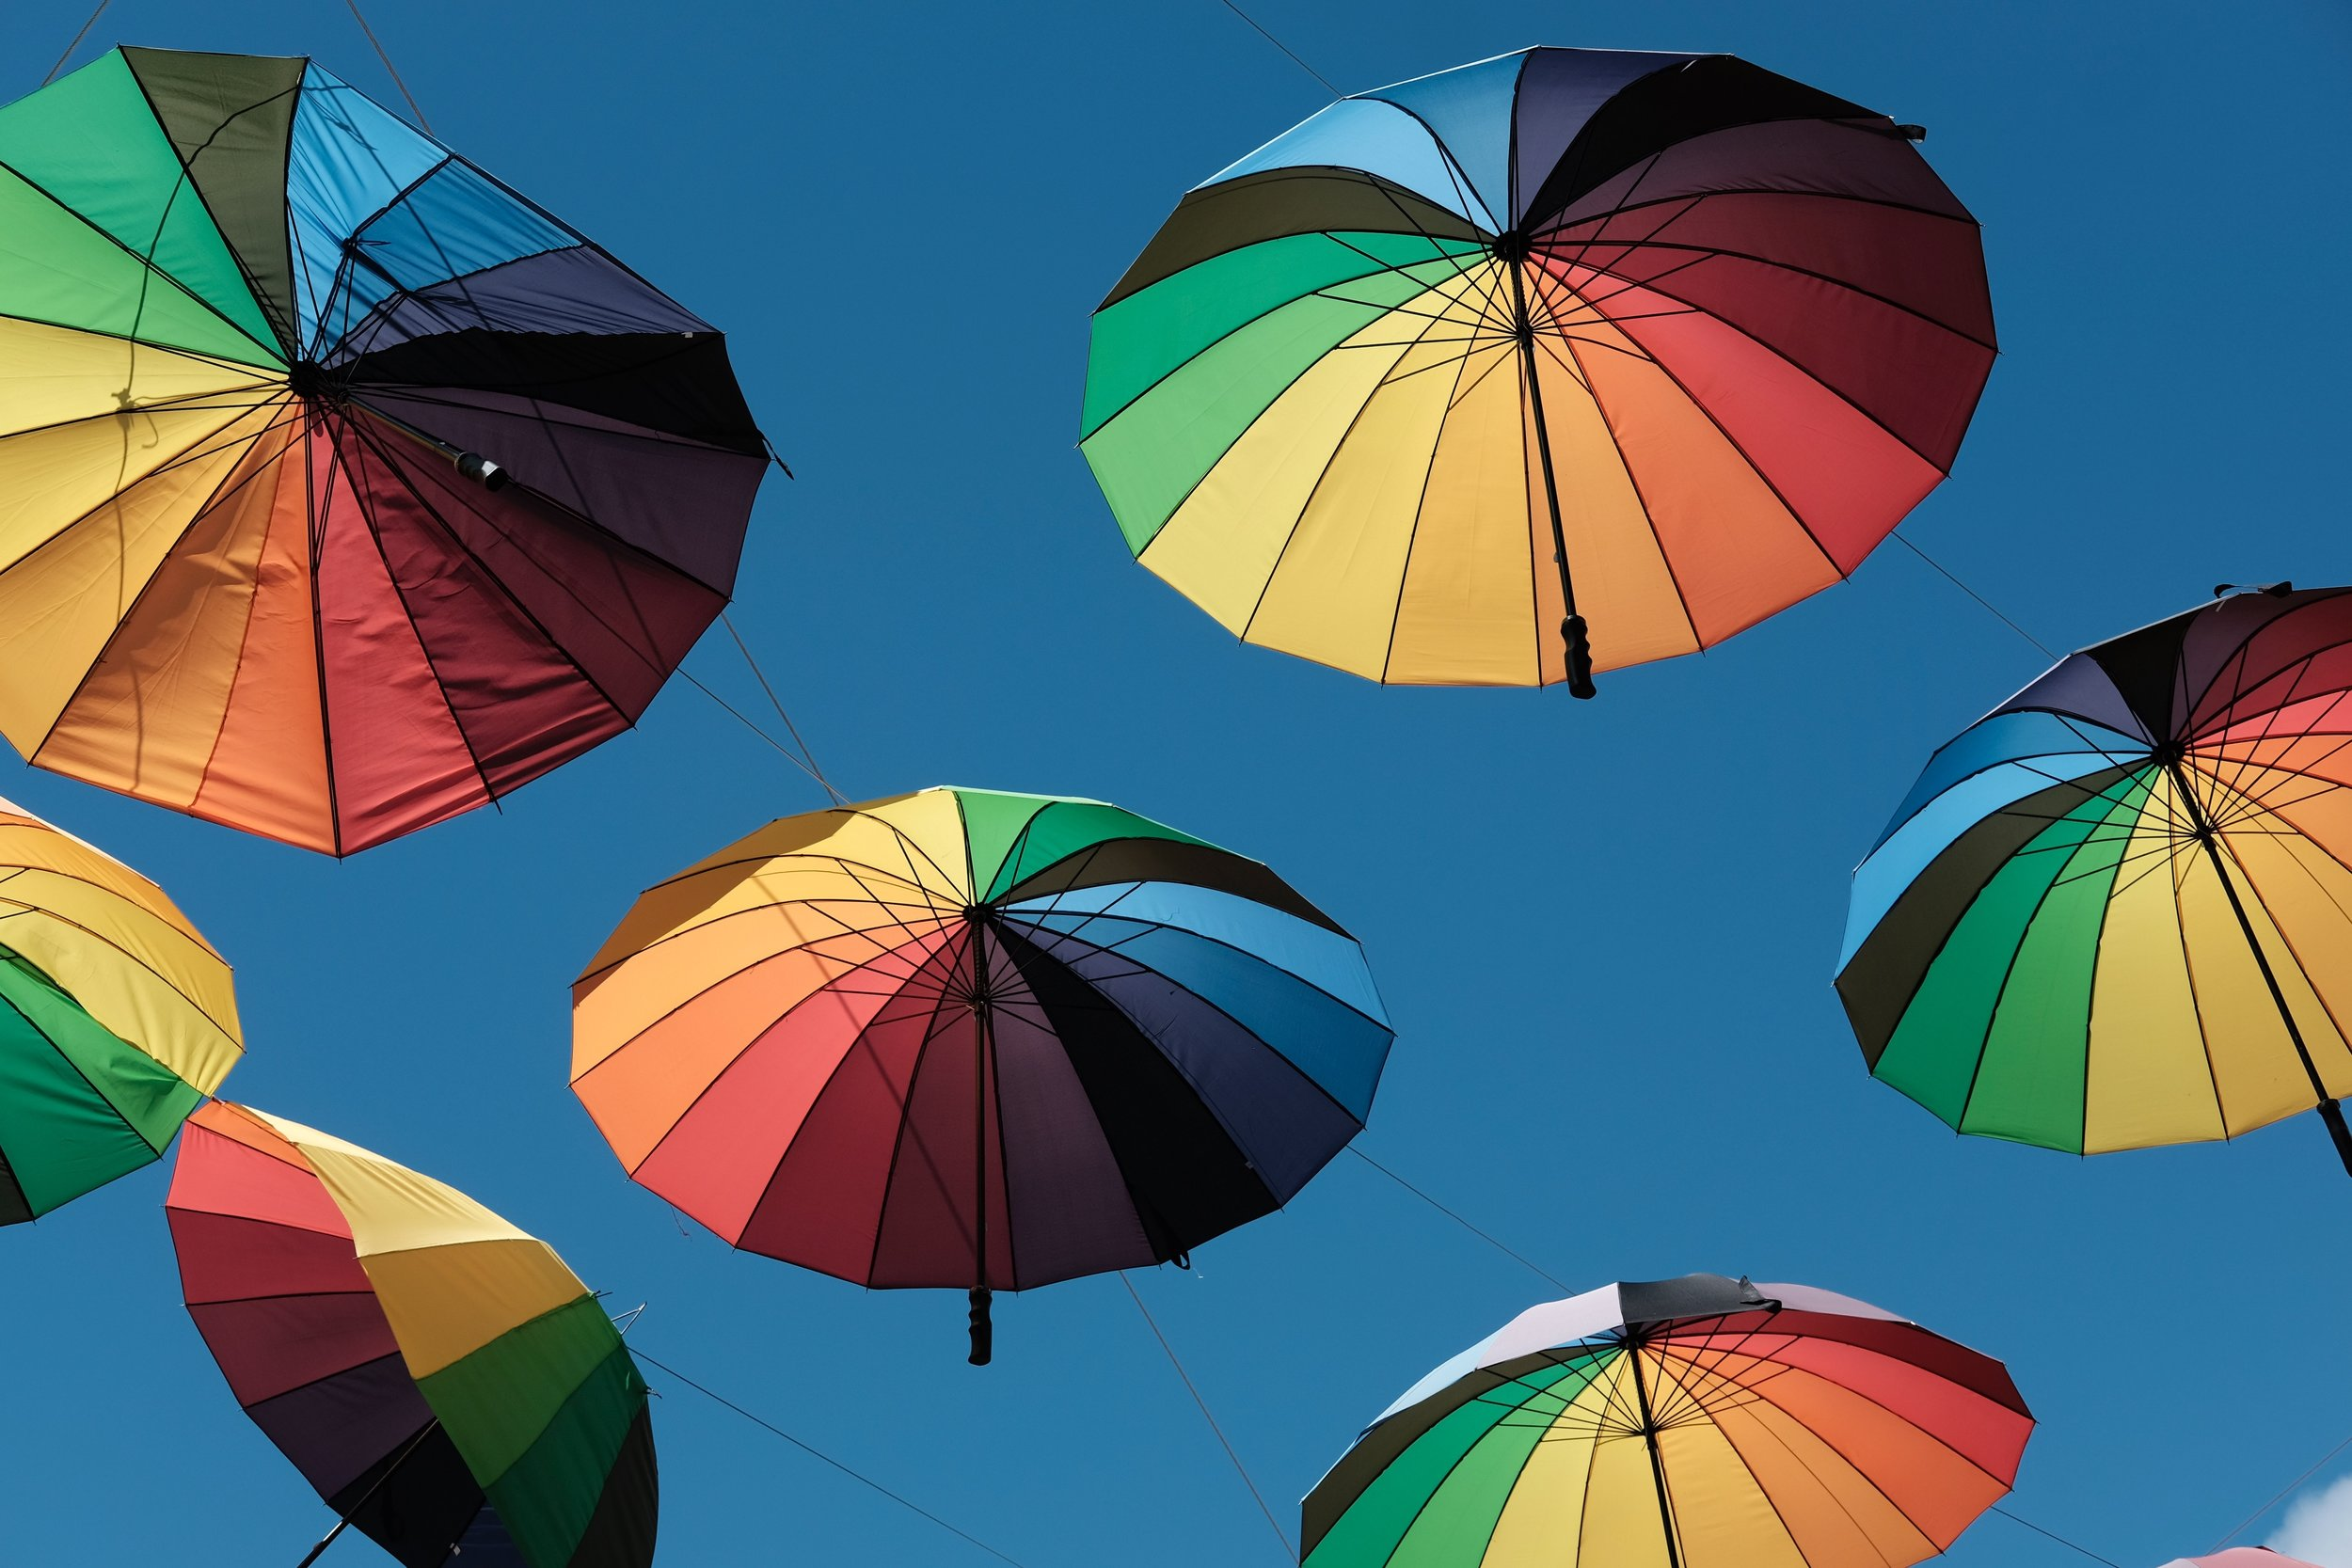 safe spaces research - a research project to identify the support service needs of LGBTIQ+ Muslims in Victoria